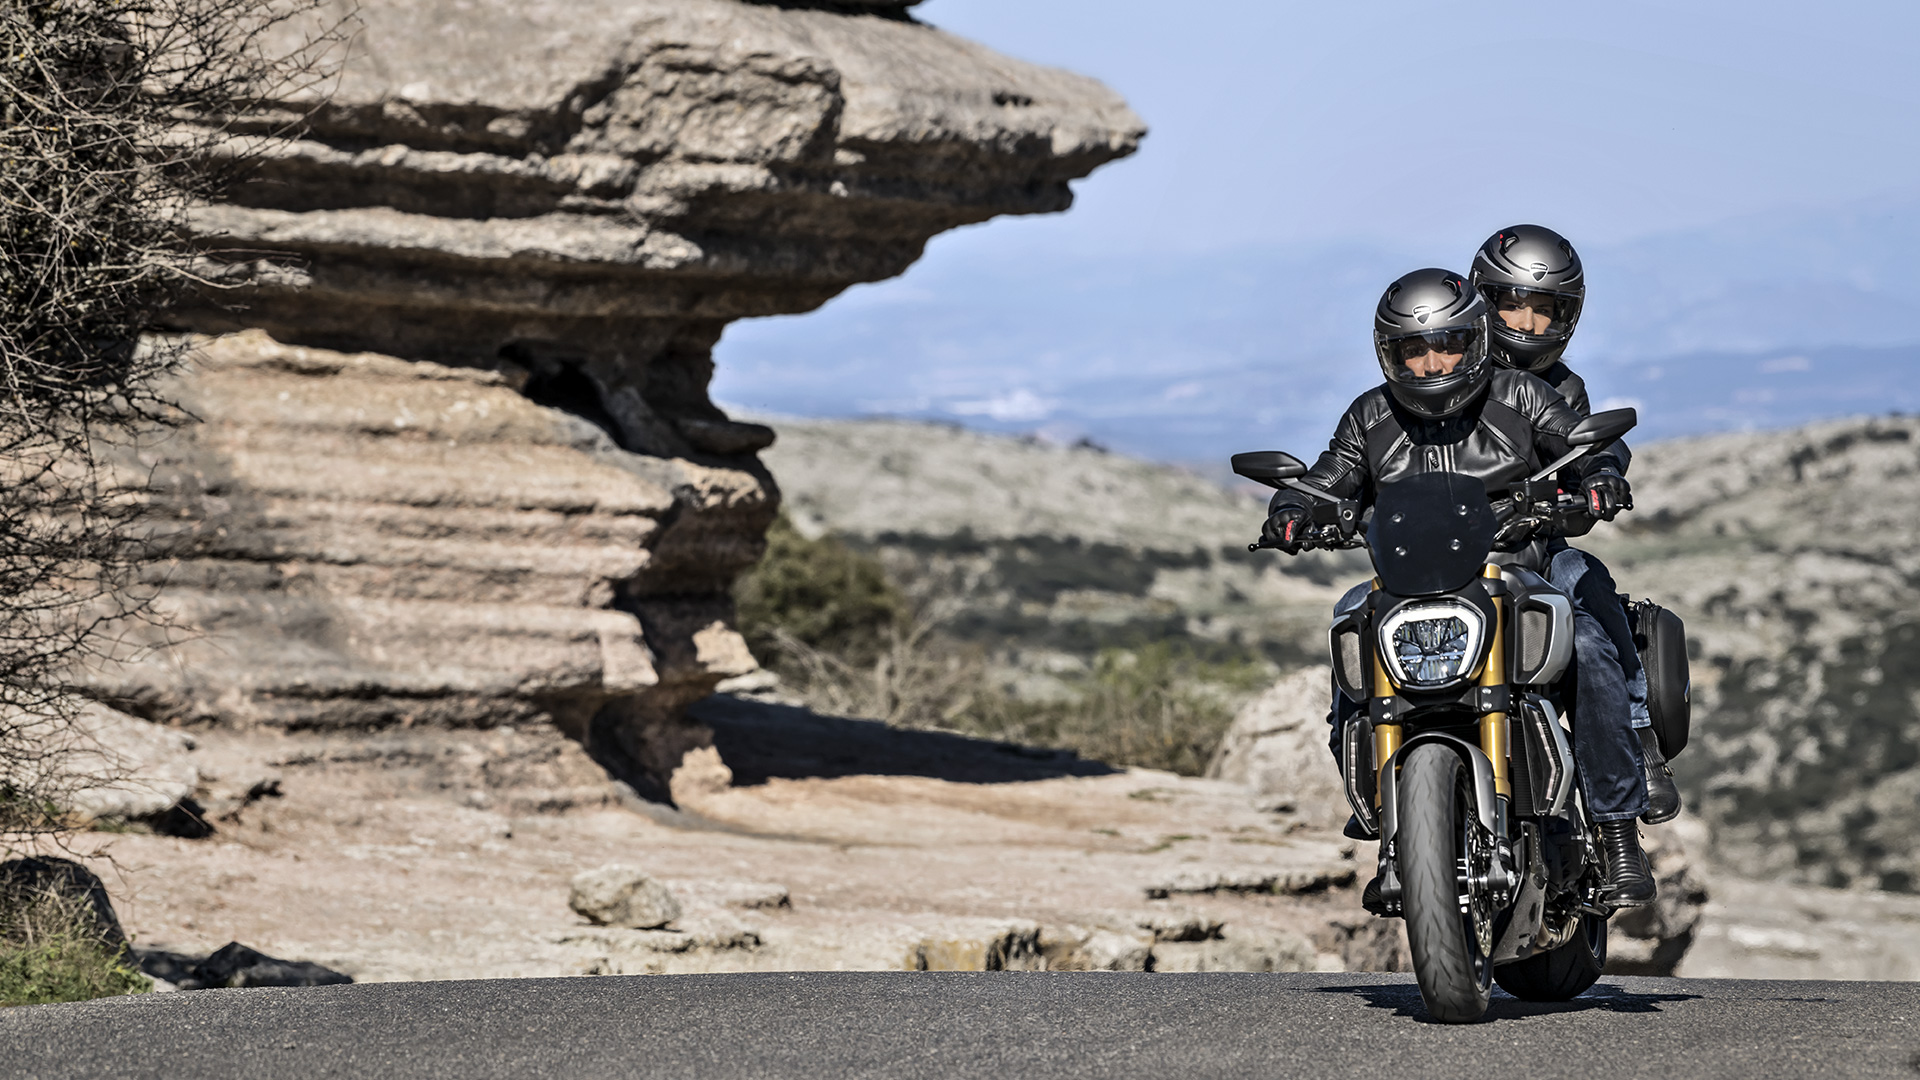 New Ducati Diavel 1260   The Maxi-Naked Powerful and Muscular